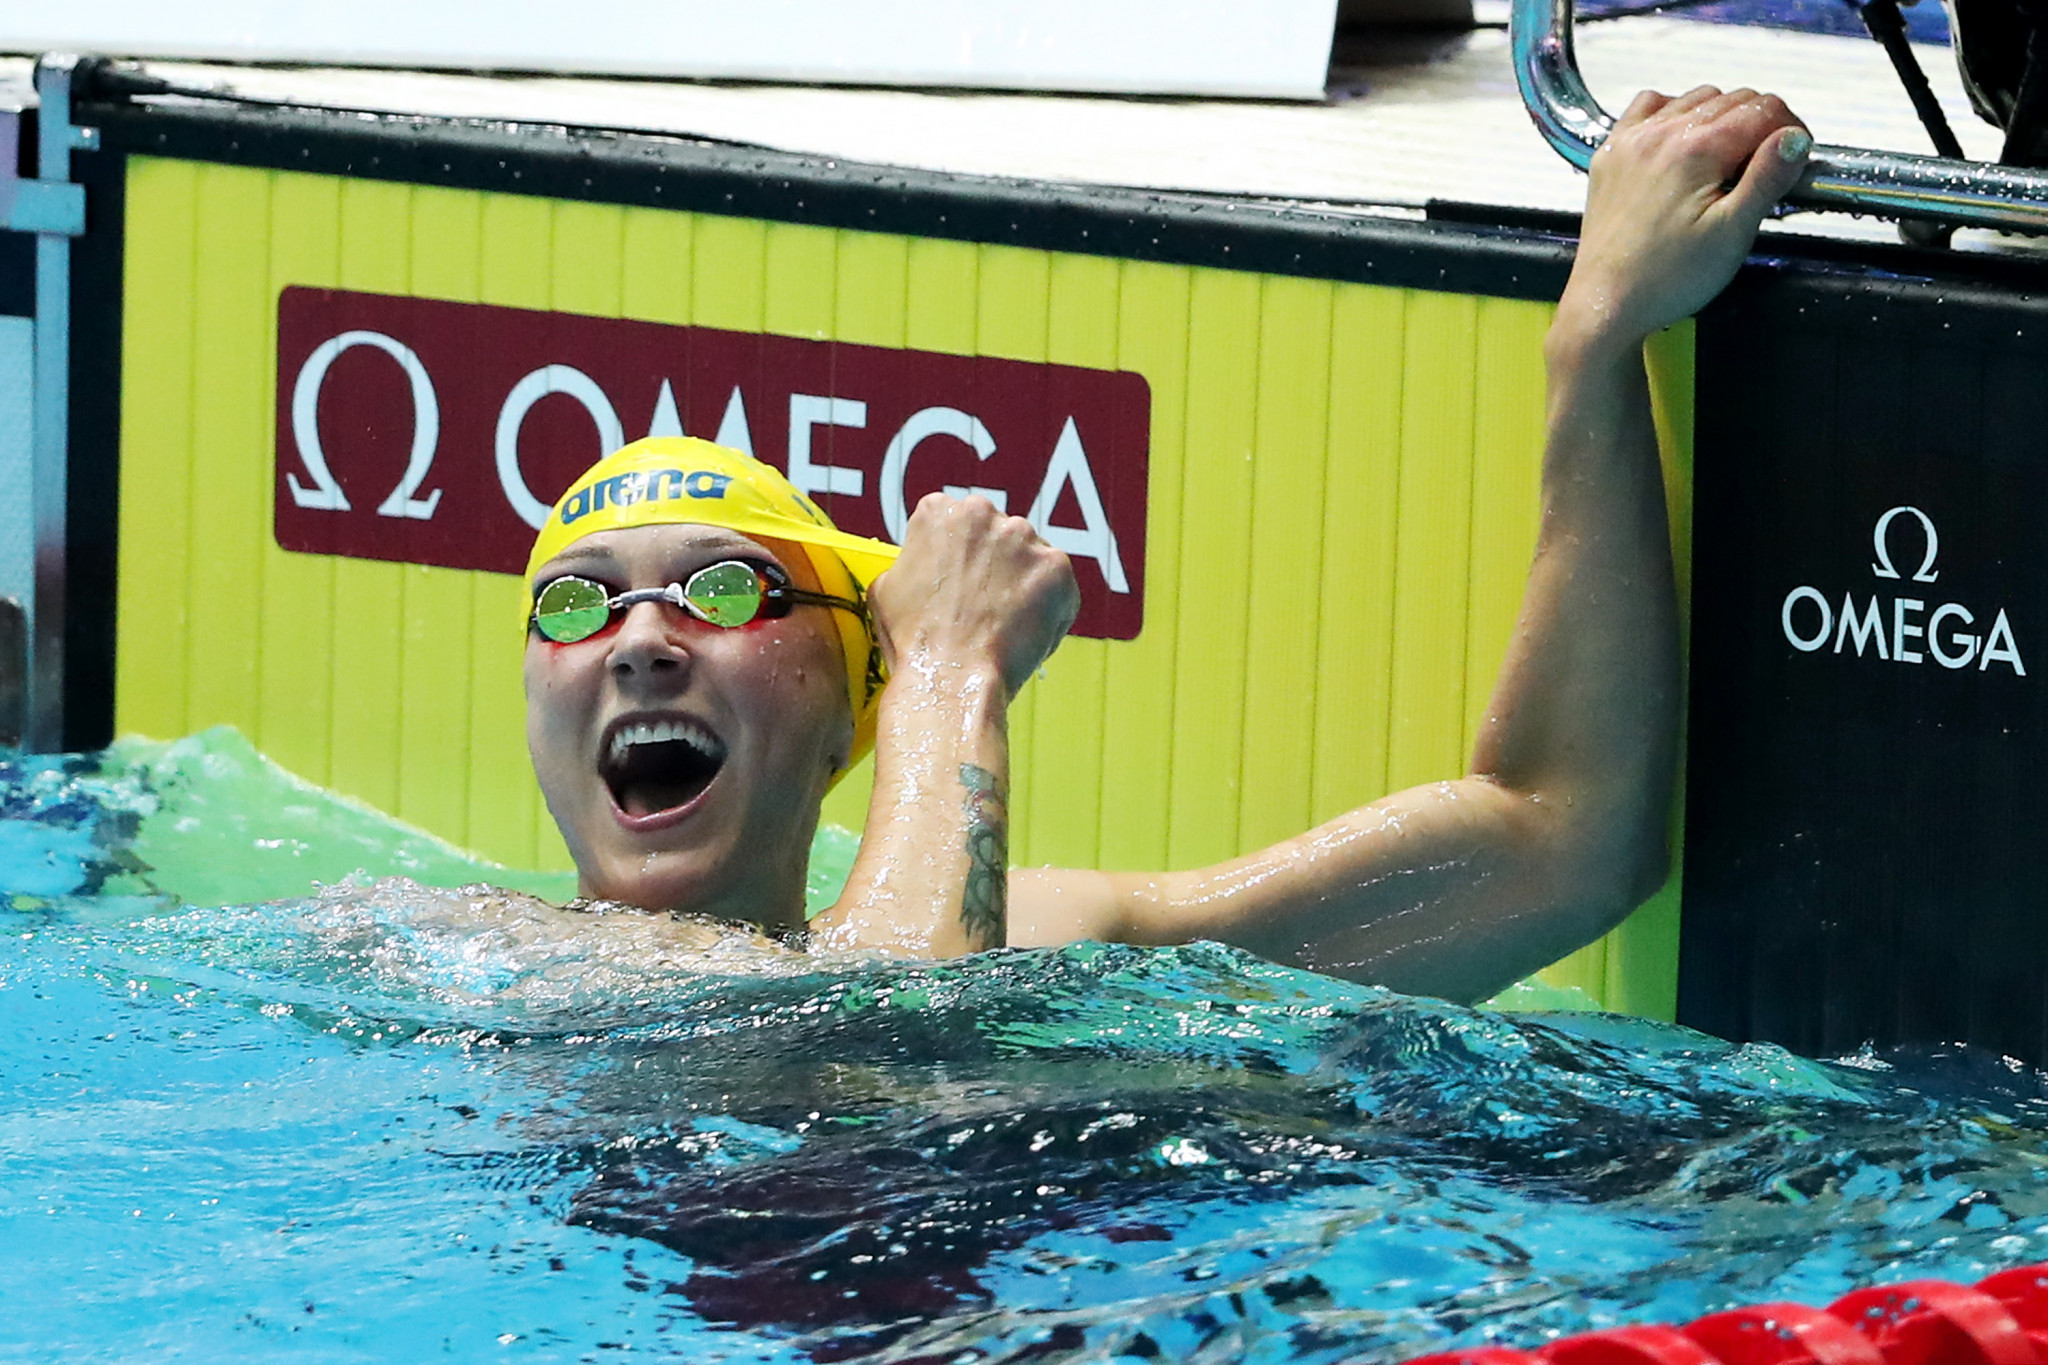 Swimmer Sjöström facing race to be fit for Tokyo 2020 after breaking elbow